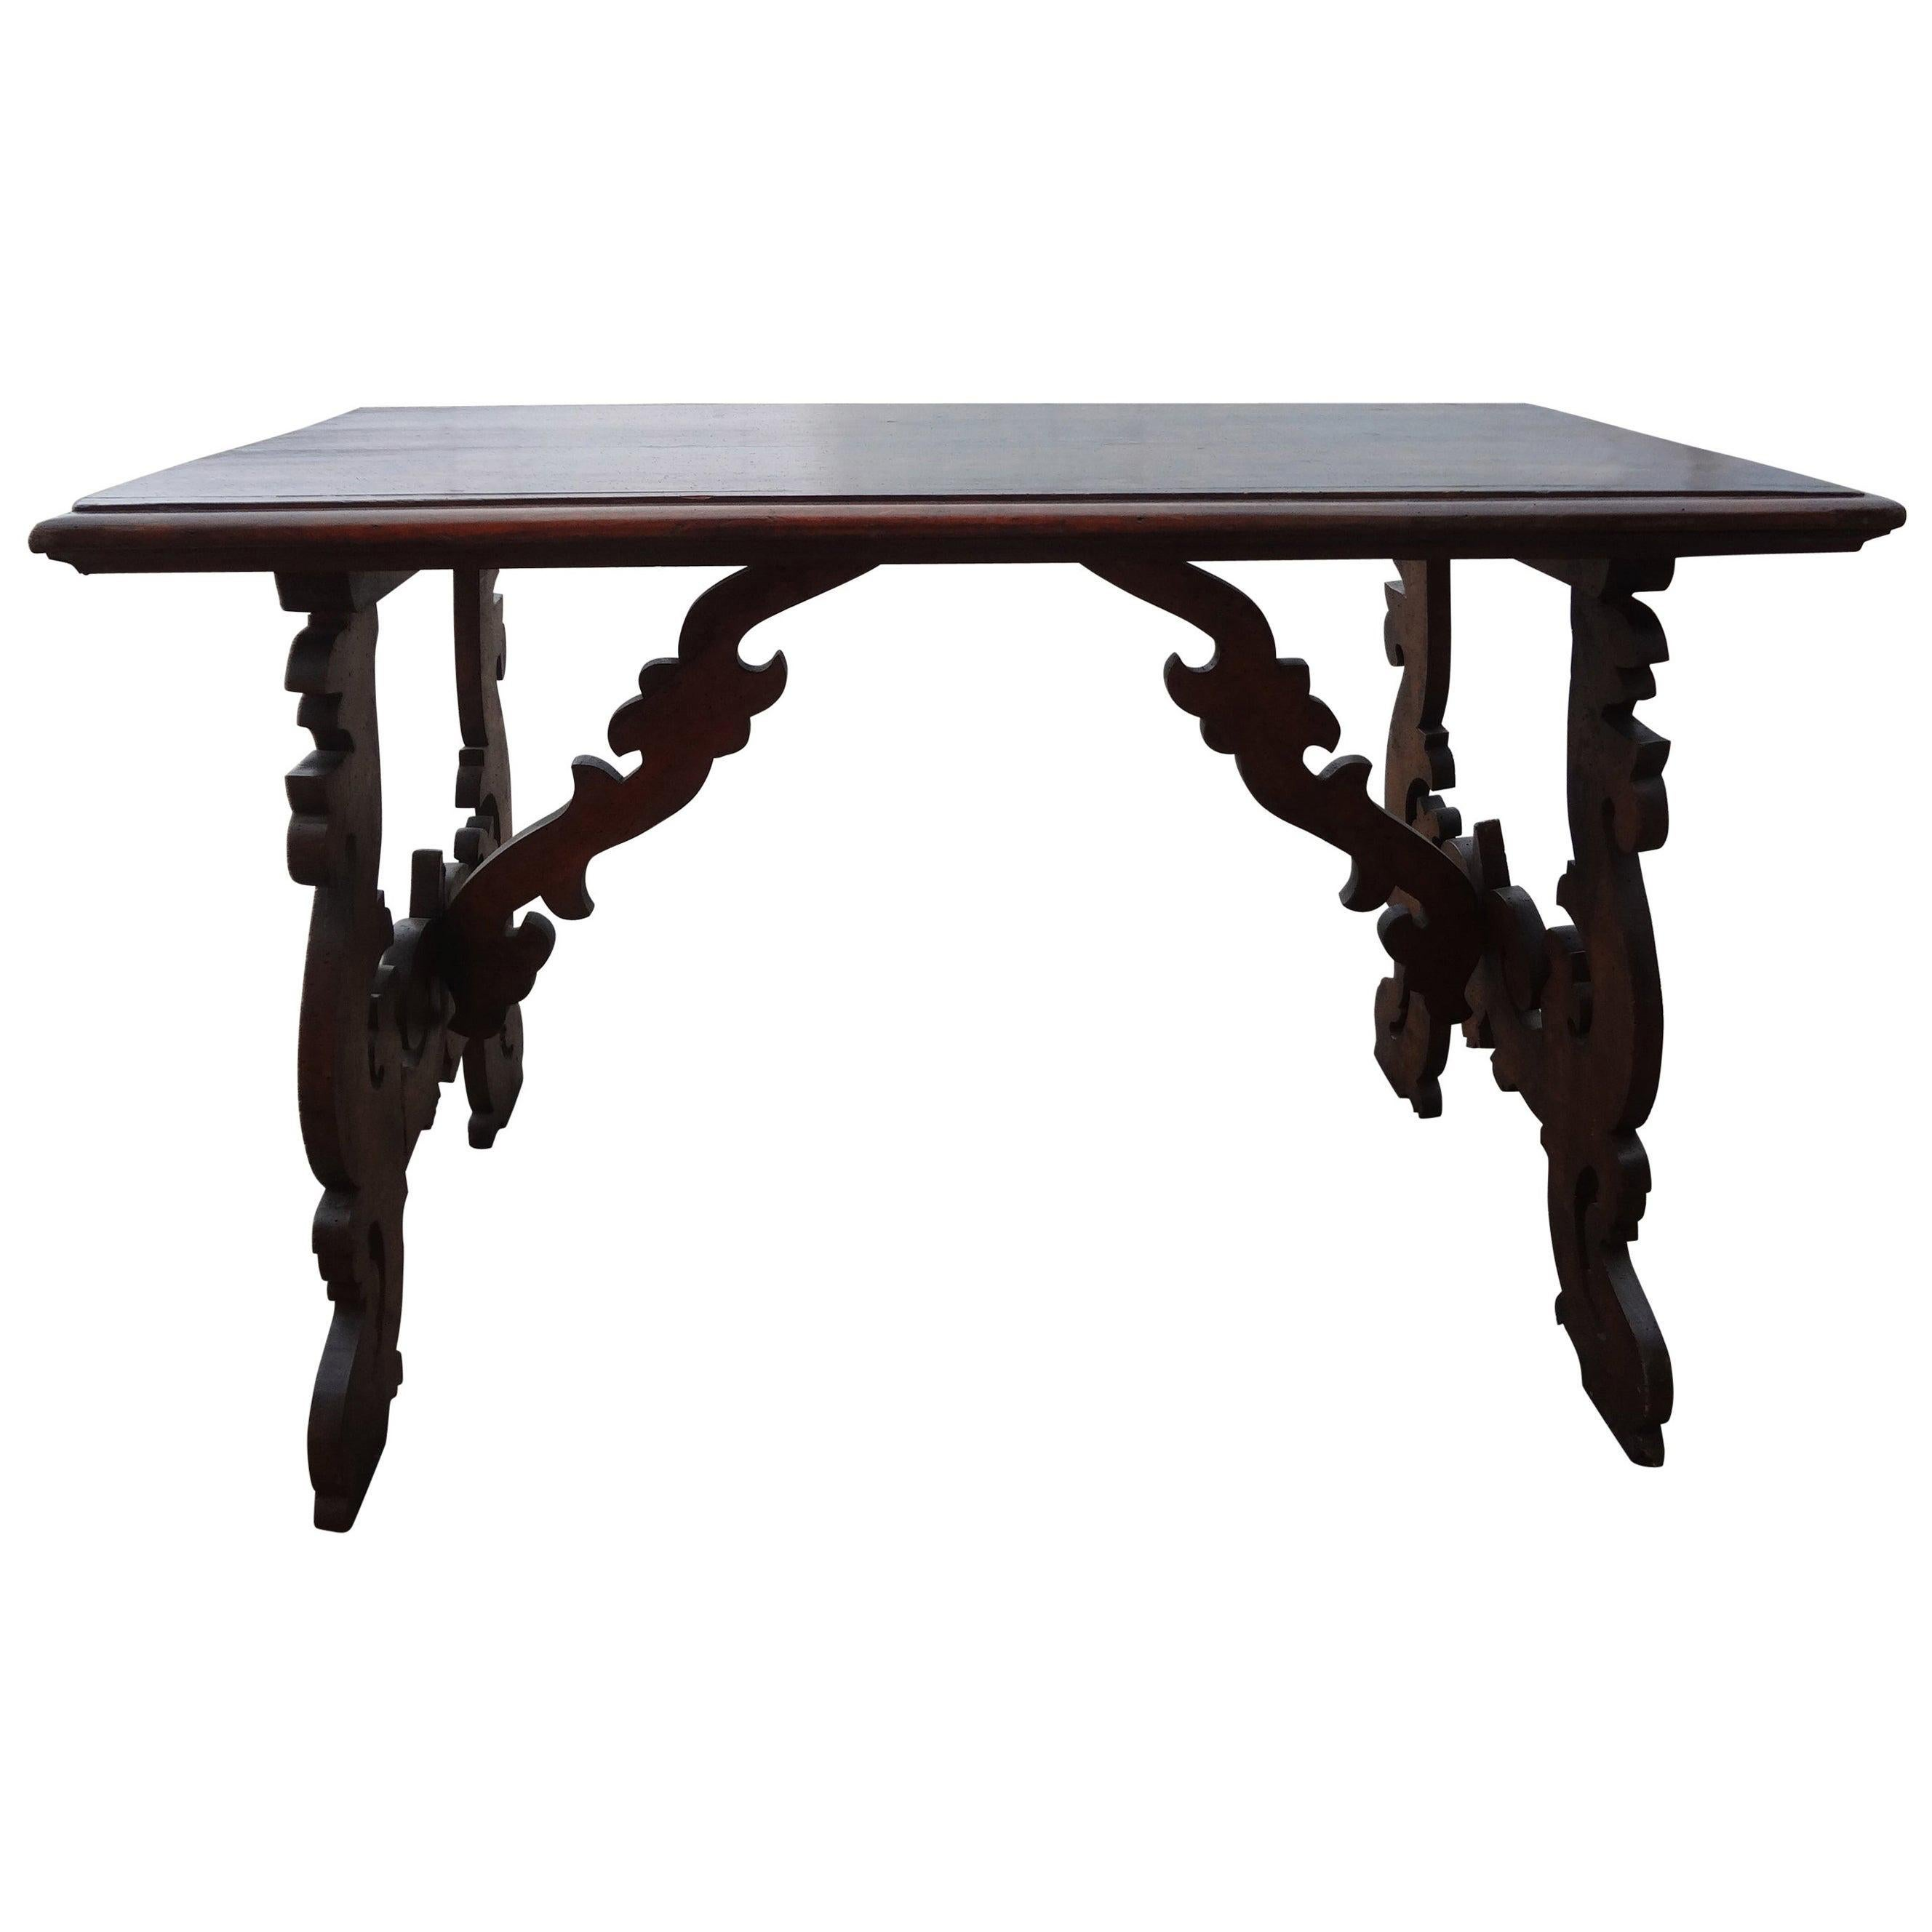 19th Century Italian Carved Walnut Table